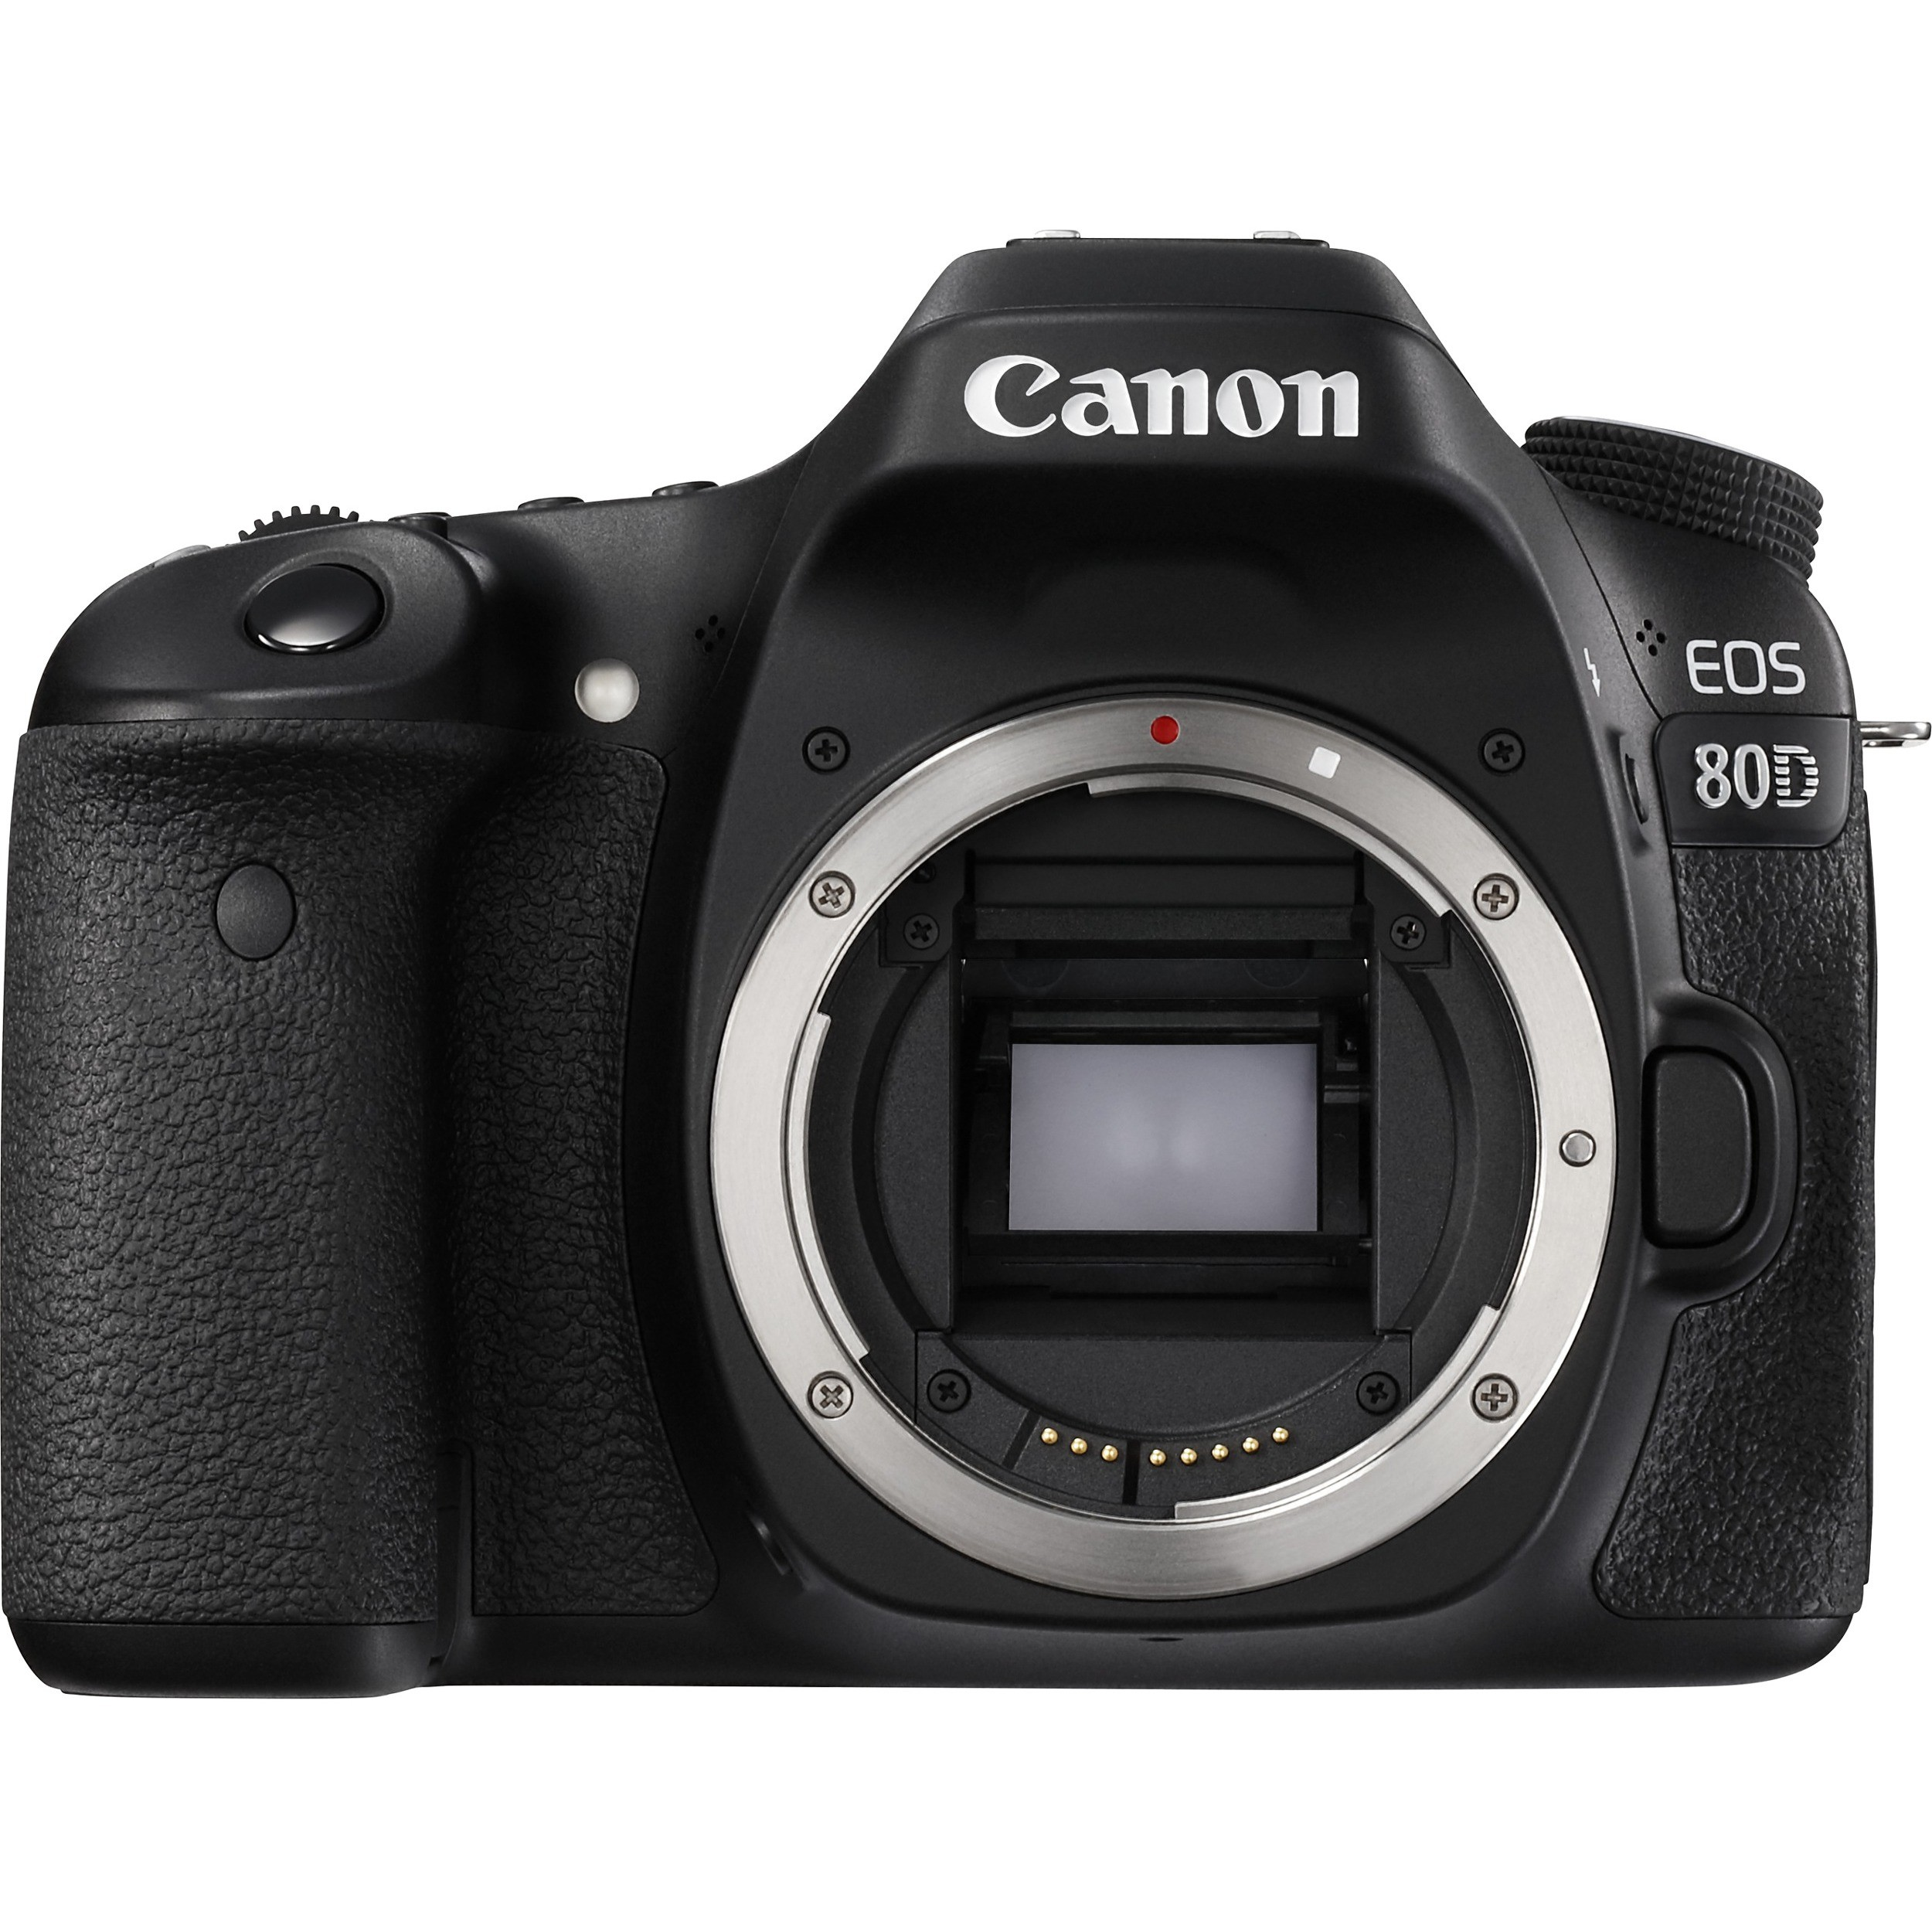 "Canon EOS 80D 24.2 Megapixel Digital SLR Camera Body Only Black 3"" Touchscreen LCD 16:9 E-TTL II 6000 x 4000 IMage... by Canon"